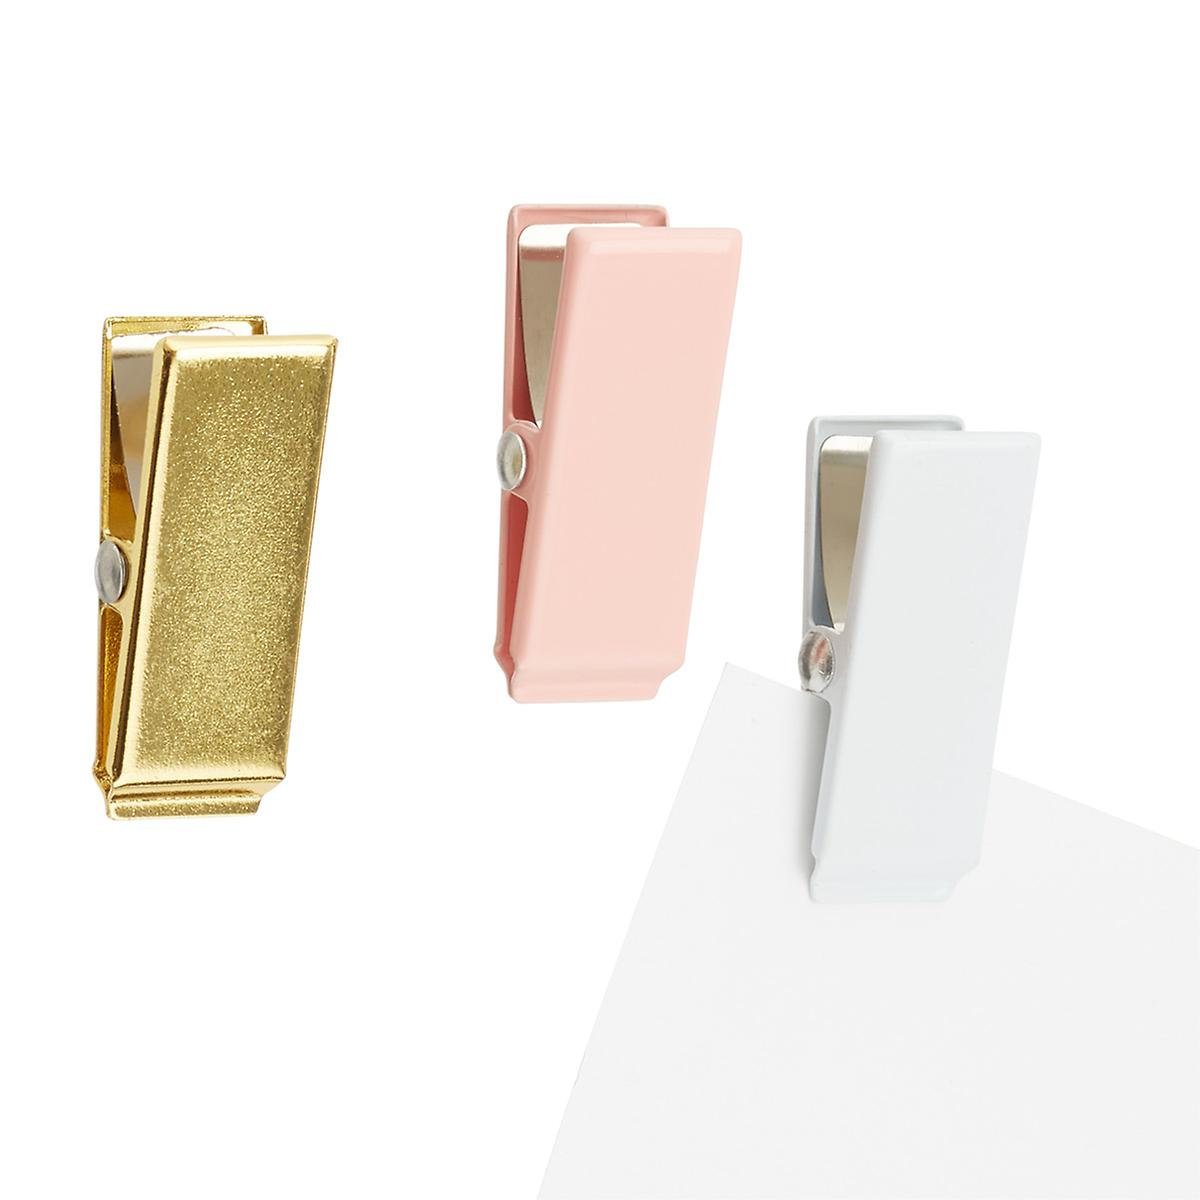 Gold, Blush and White Mini Clipper Magnets, Package Of 3, $1.99. Container Store